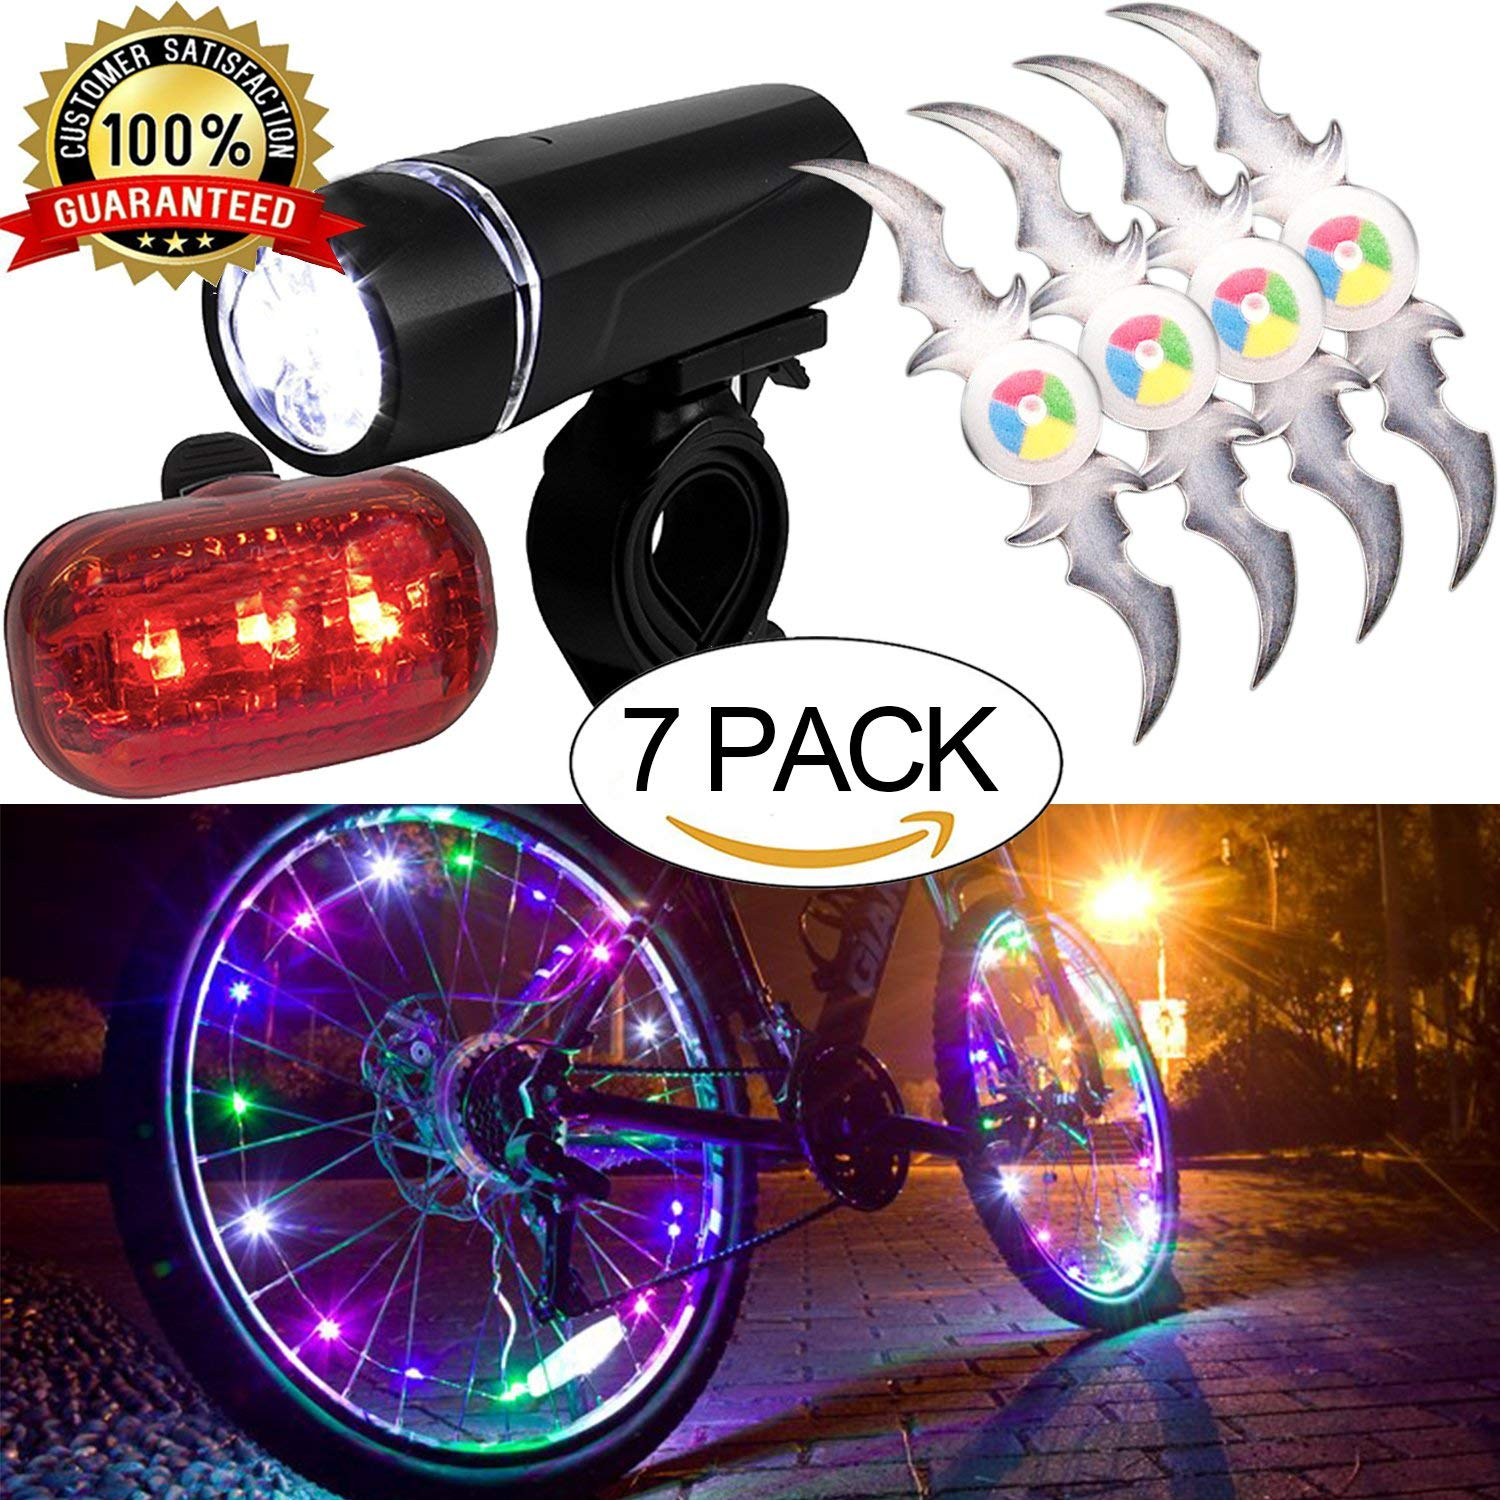 Bicycle LED Light Set Super Bright Headlight Taillight,Waterproof Flashlight Bike Wheel Lights,Colorful Bicycle Wheel Spoke,Cycling Light String,Bicycle Tire Accessories-COLORFUL